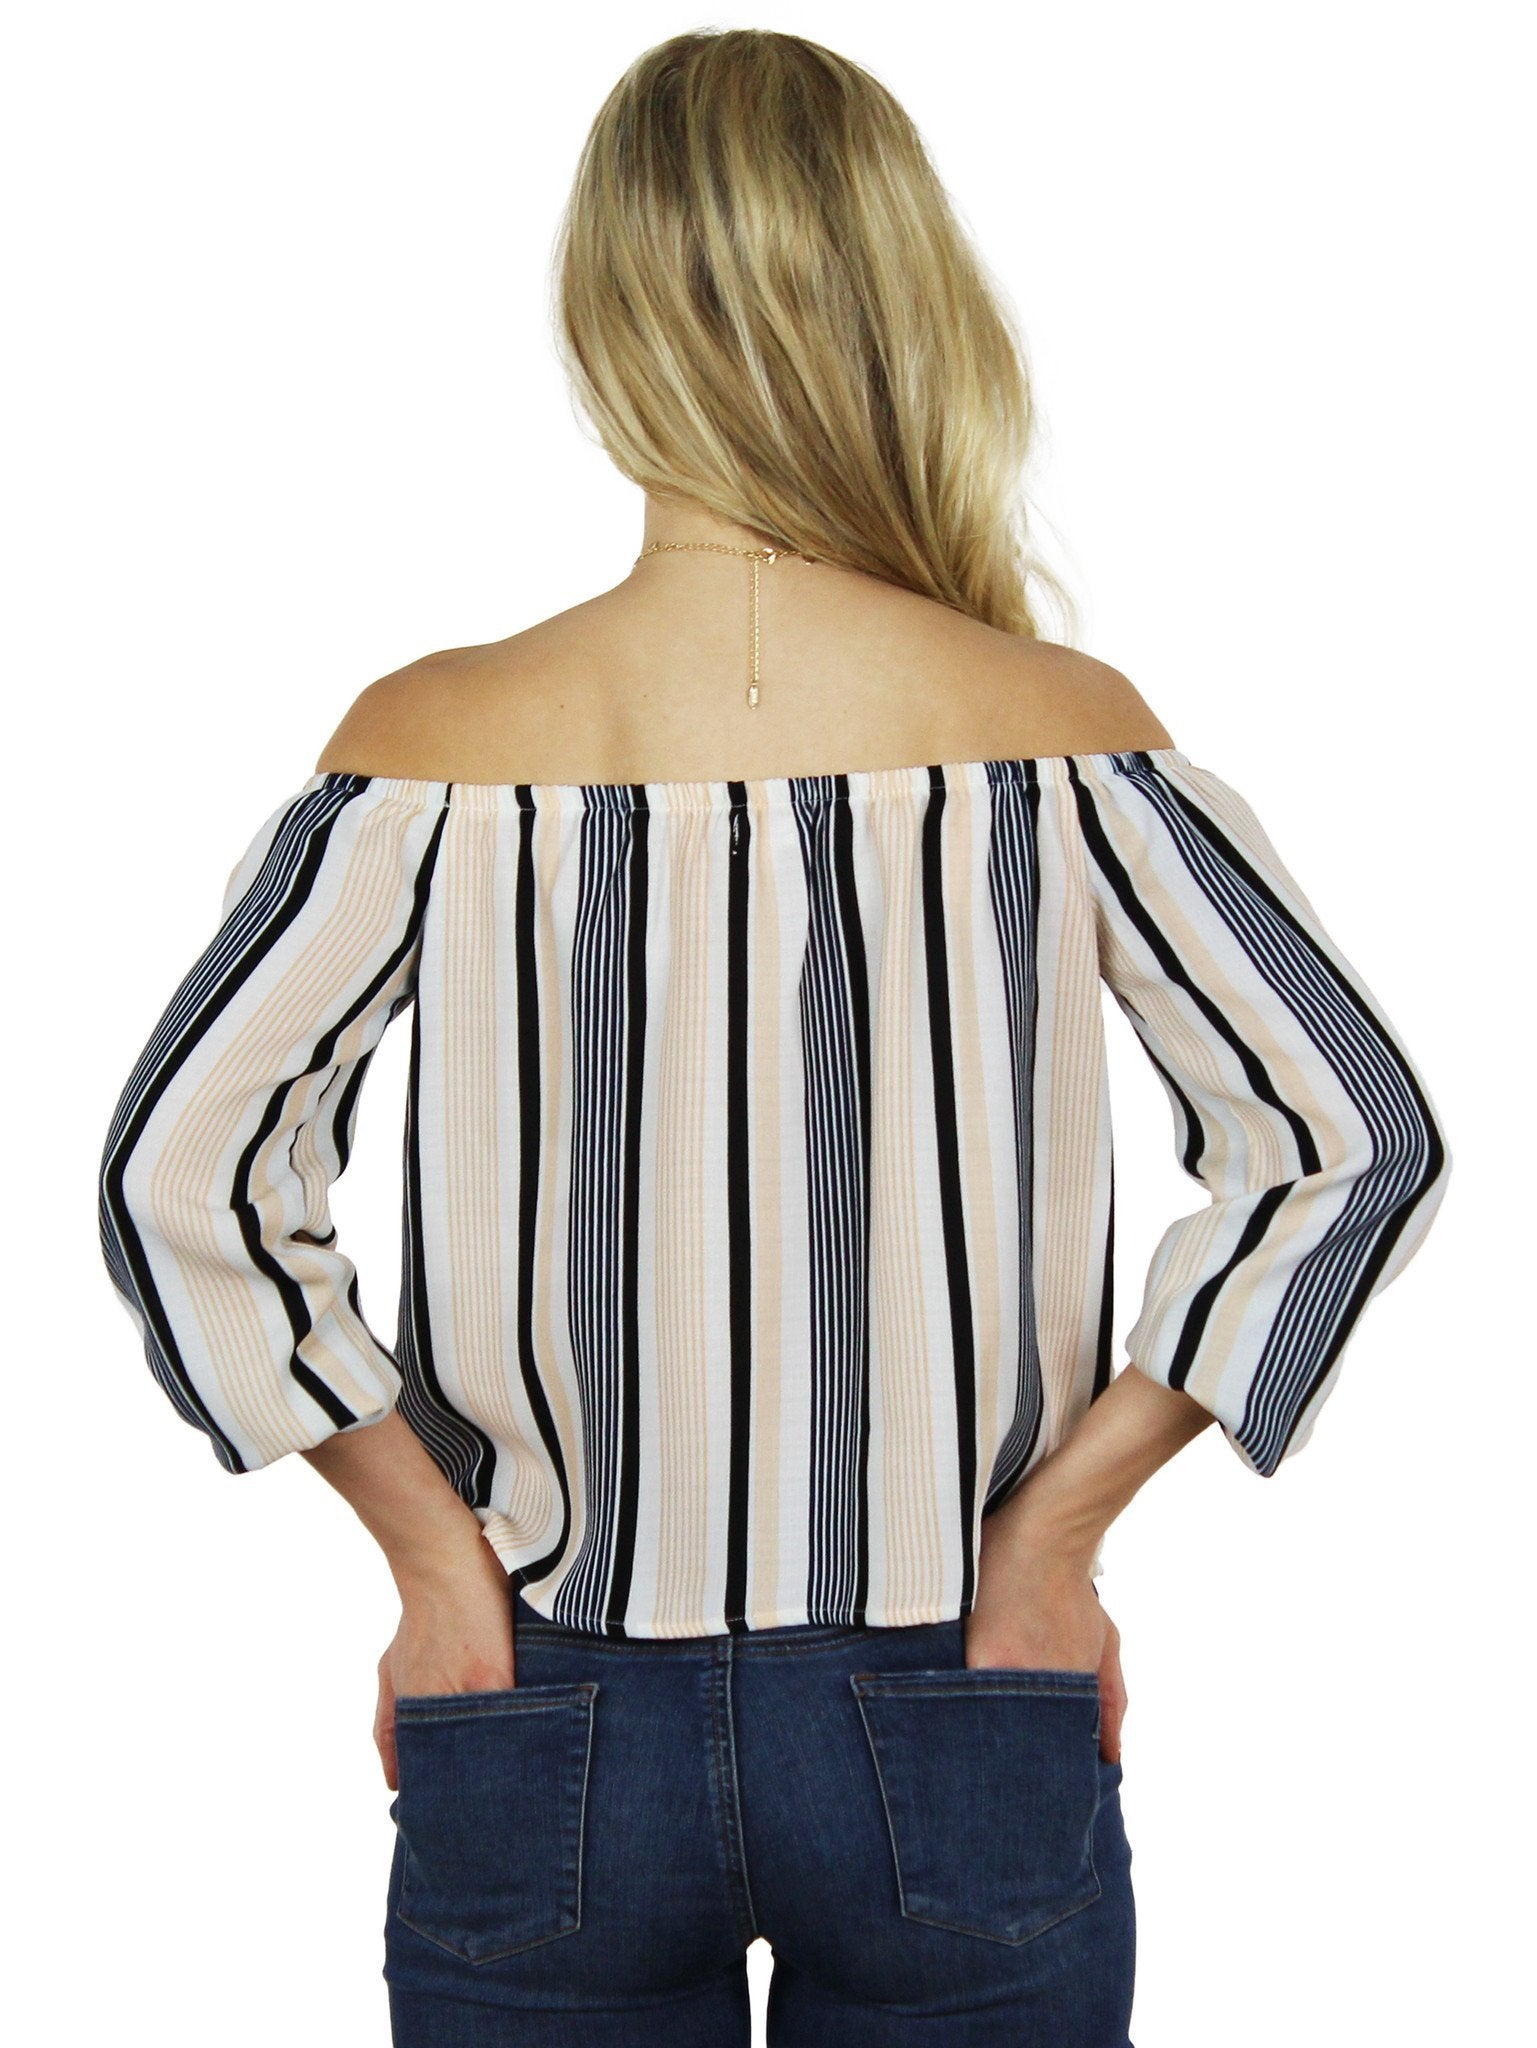 Women wearing a top rental from Lucca Couture called Stripes Are The New Black Blouse